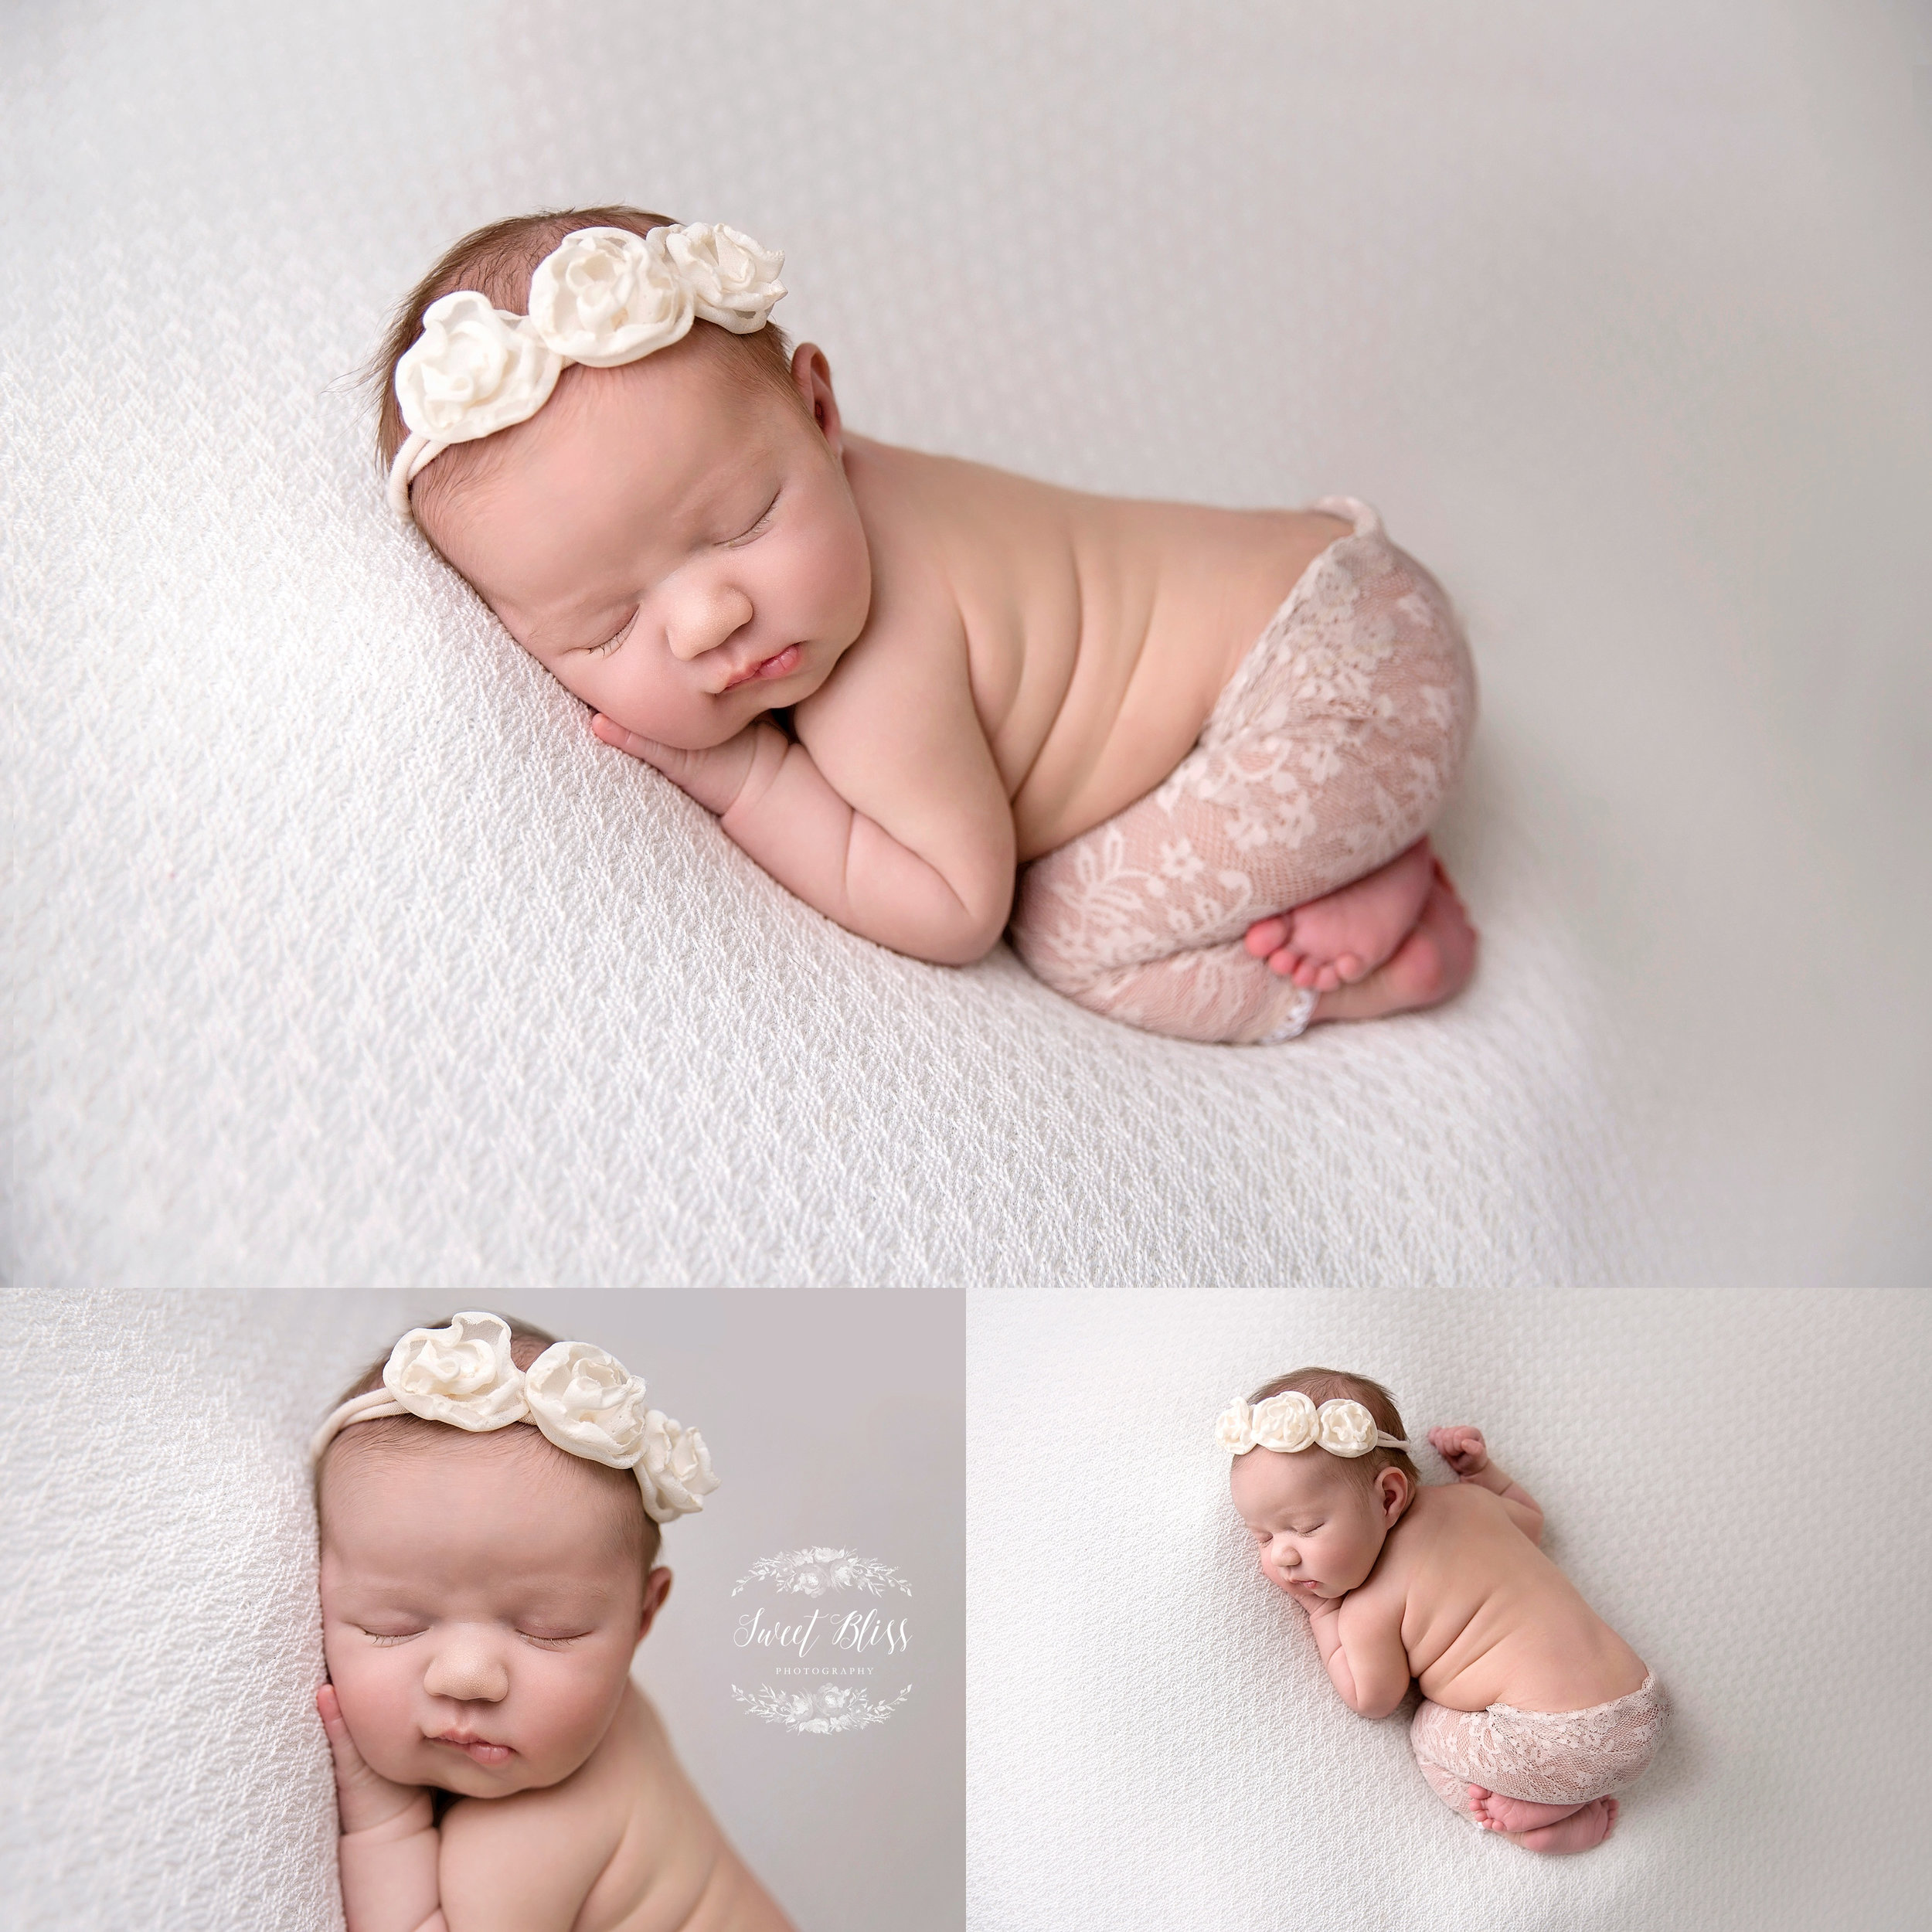 baltimorenewbornphotographer_harfordcountynewborn_sweetblissphotography_whiteblanket1.jpg